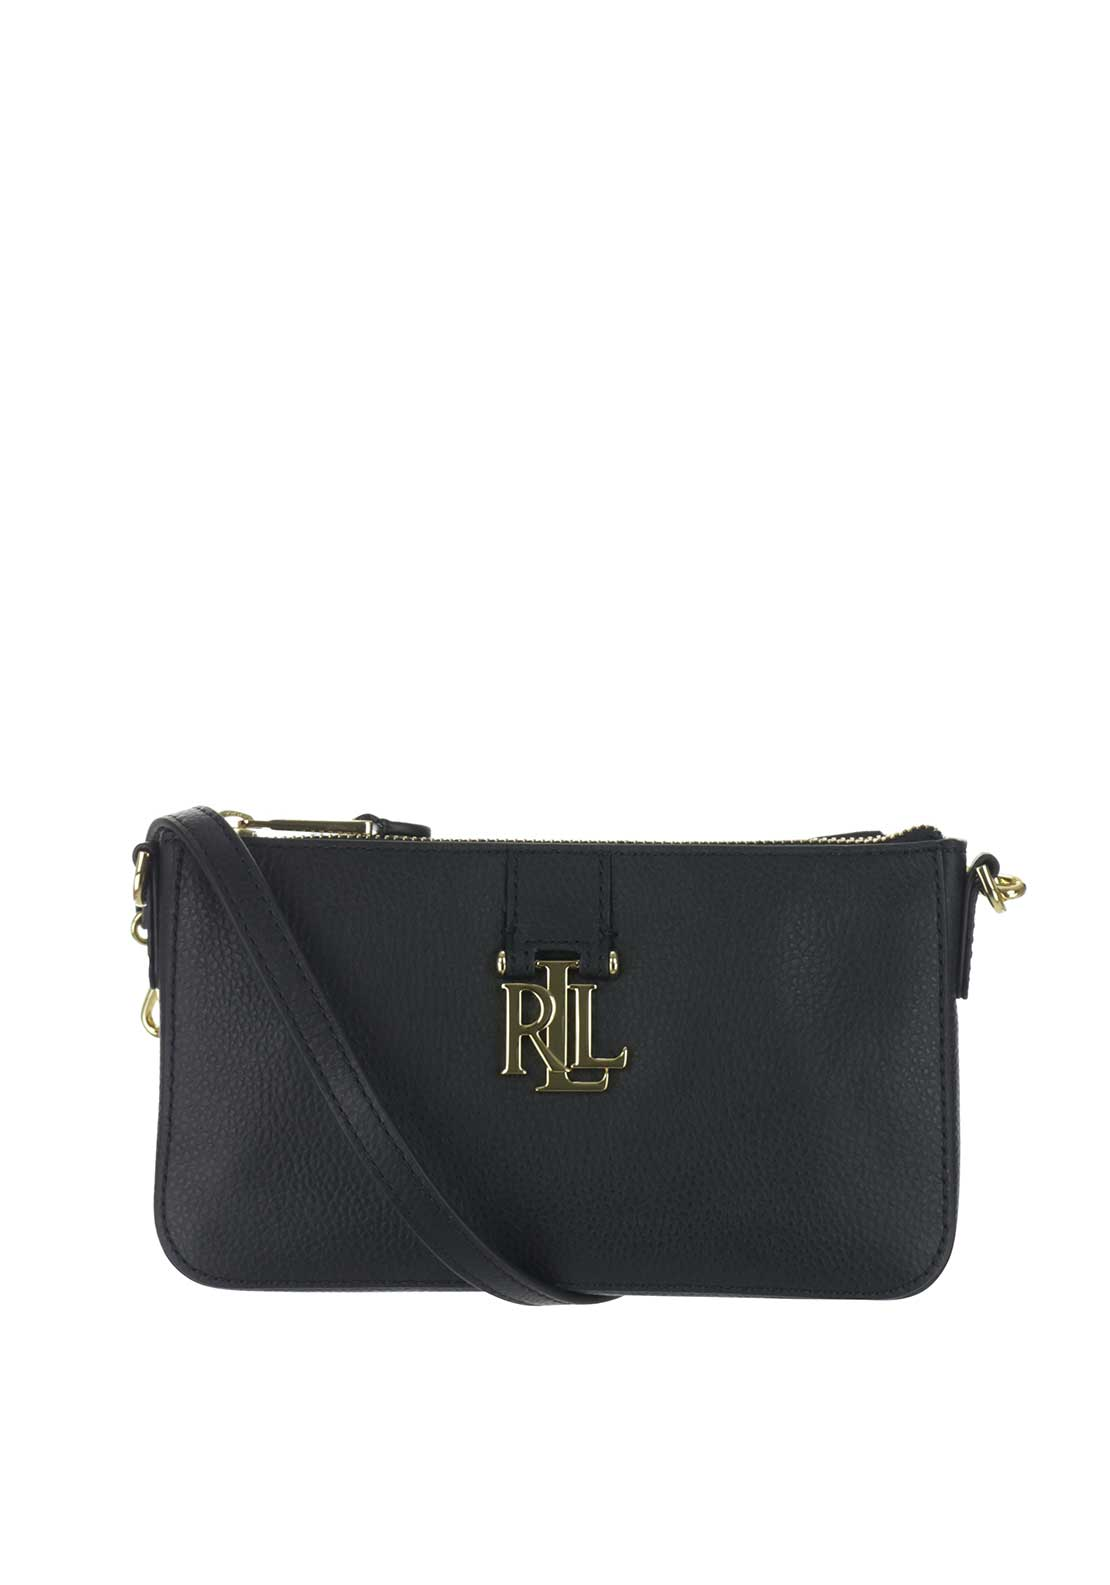 Lauren Ralph Lauren Leather Pam Shoulder Bag, Black